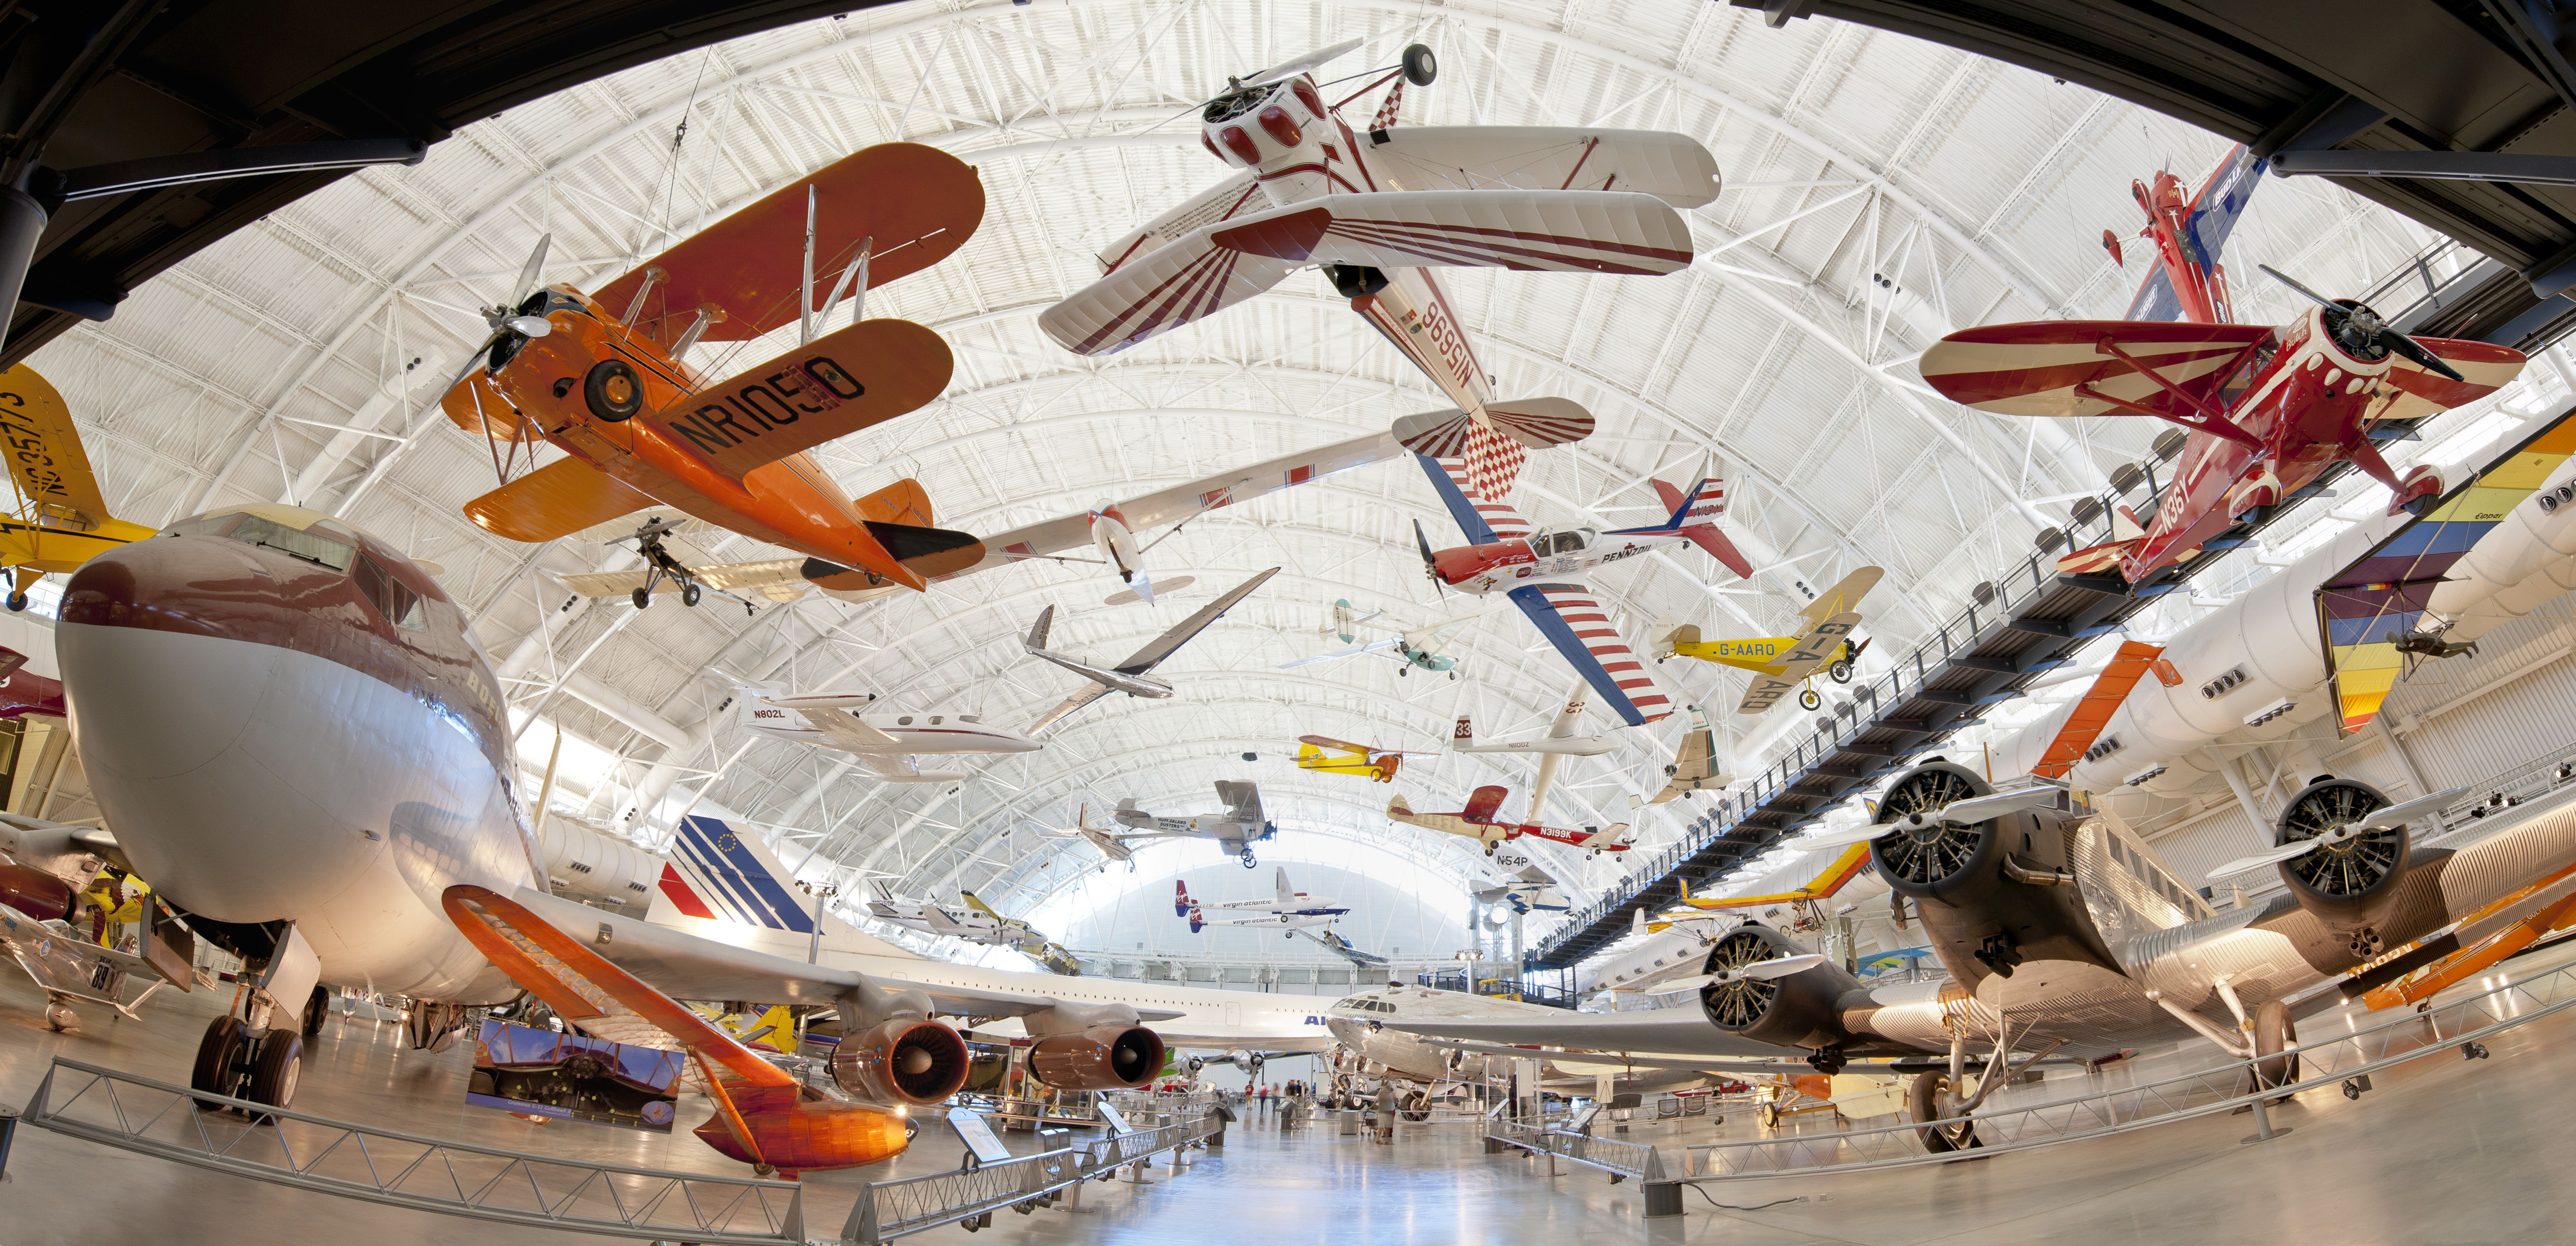 National Air and Space Museum, Steven F. UdvarHazy Center